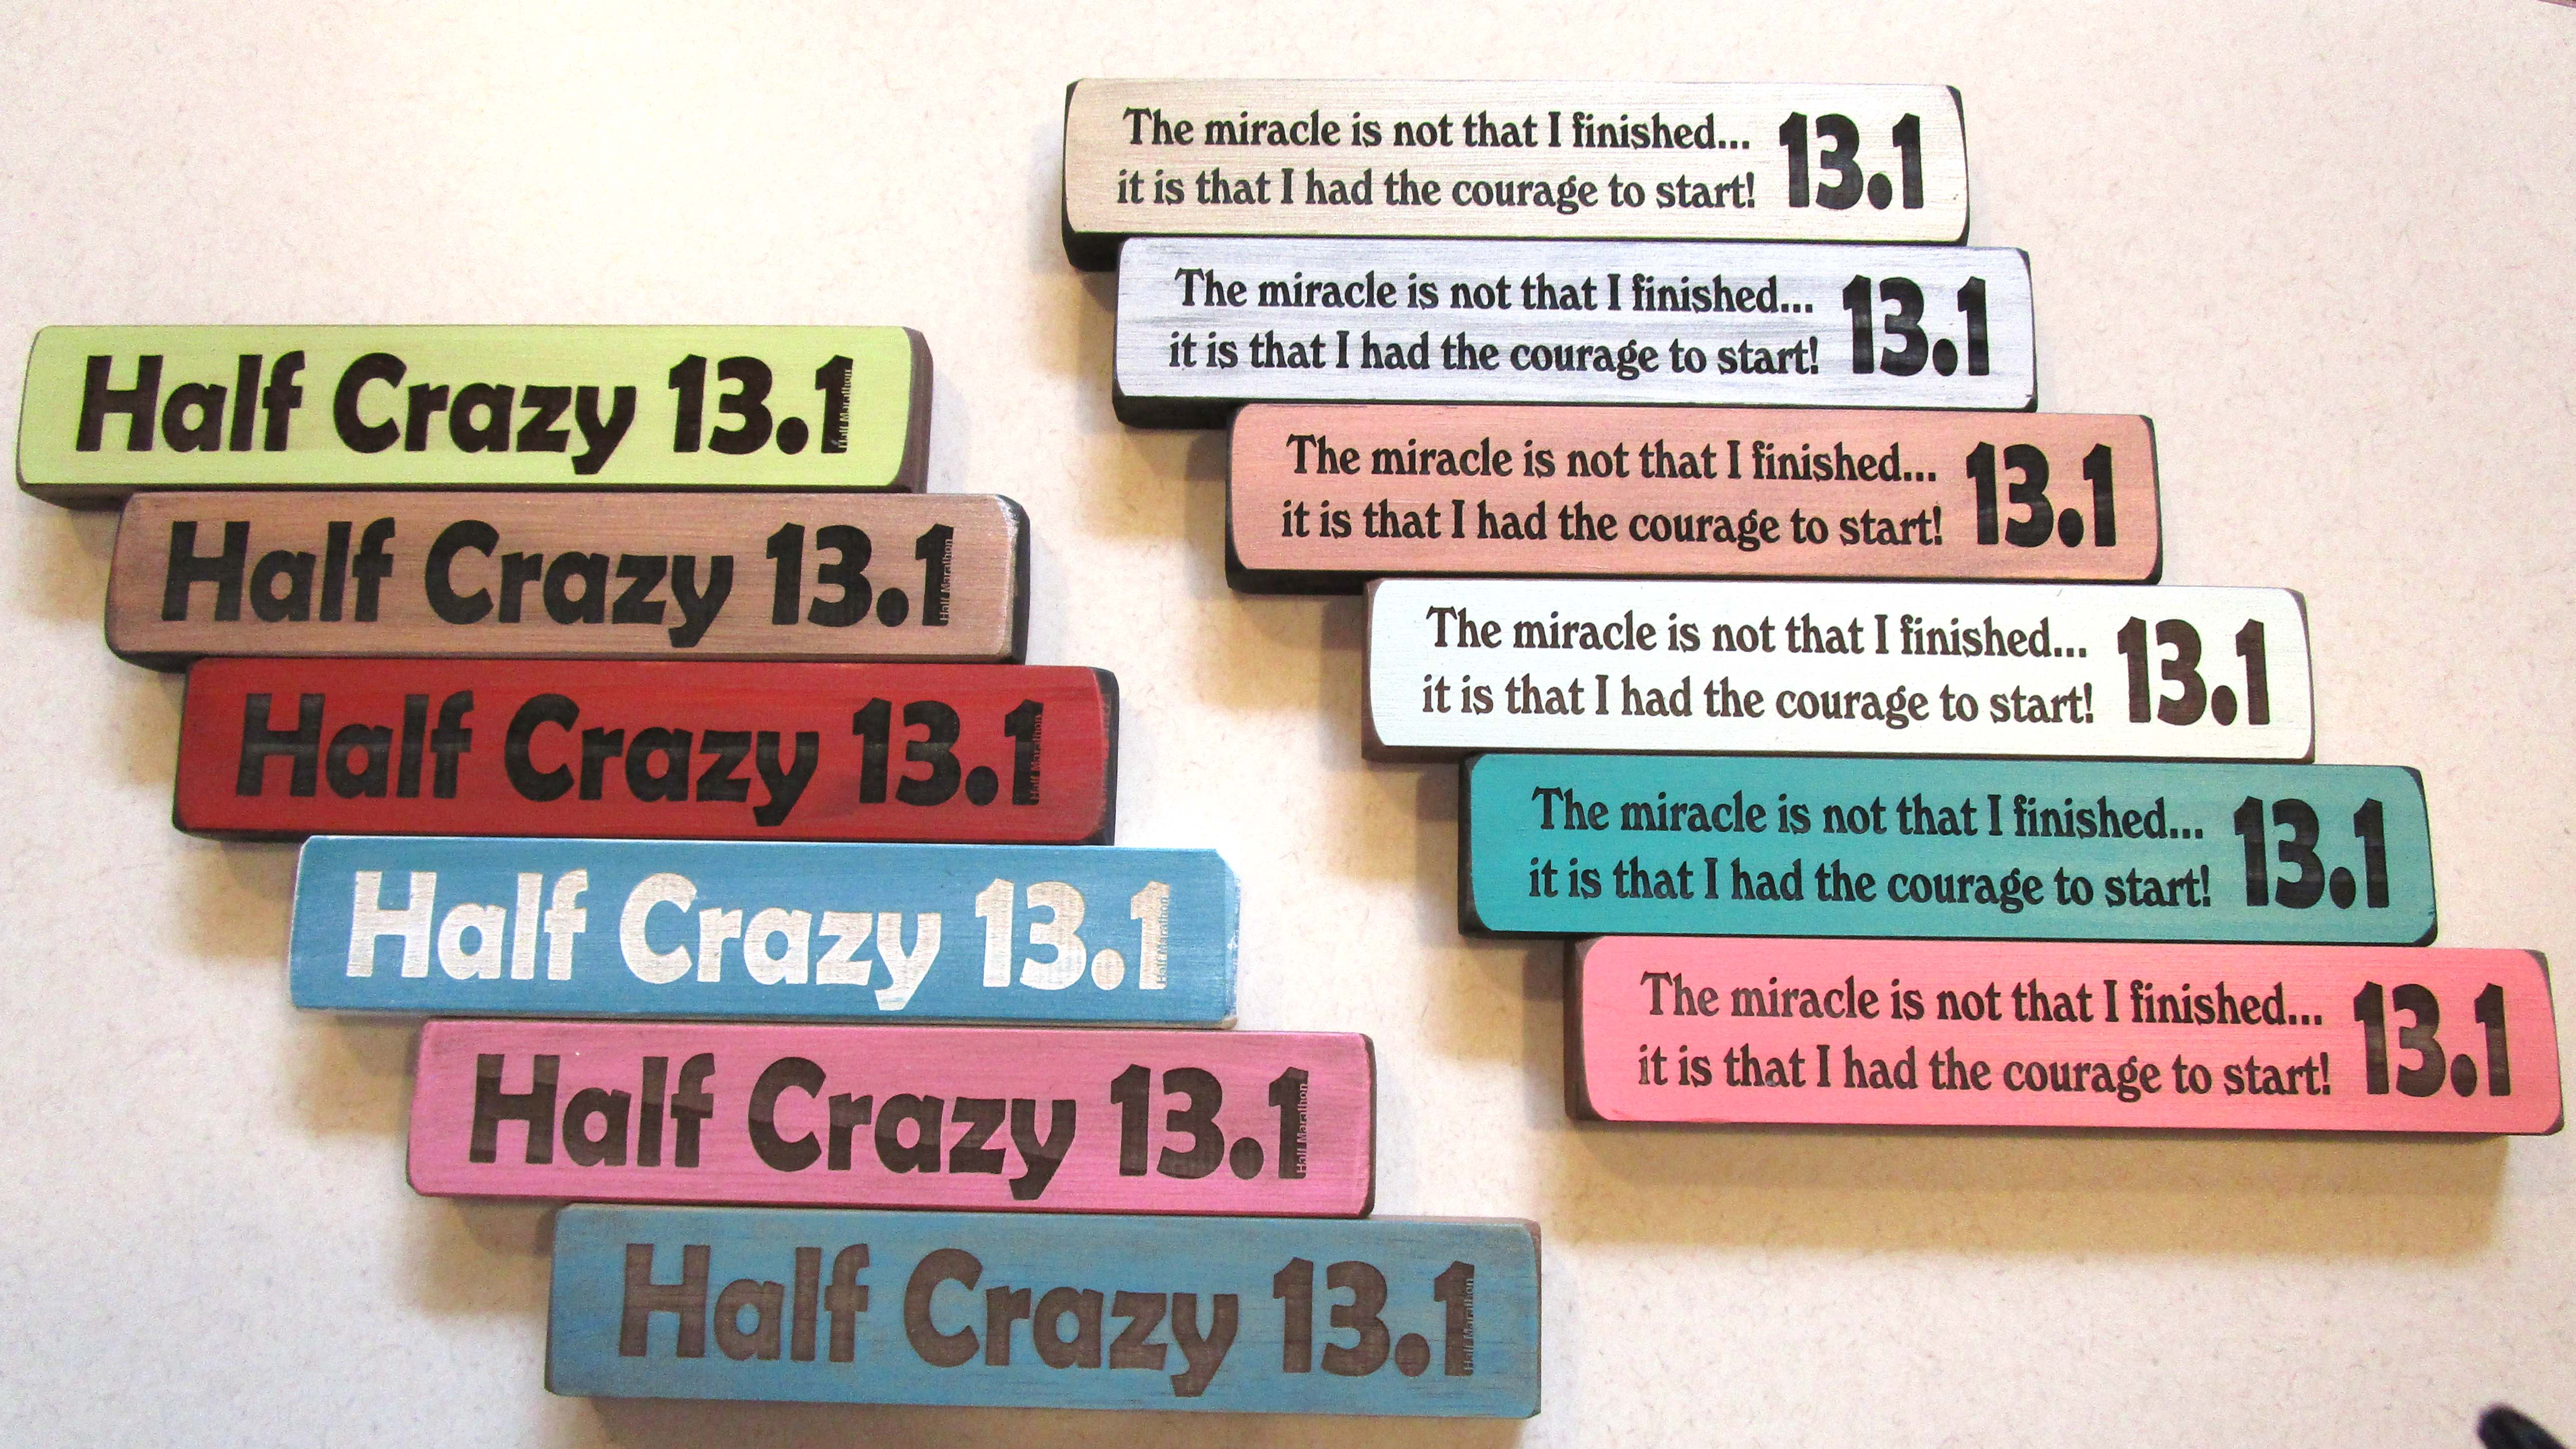 """Half Crazy 13.1"" and ""The miracle is... 13.1"""